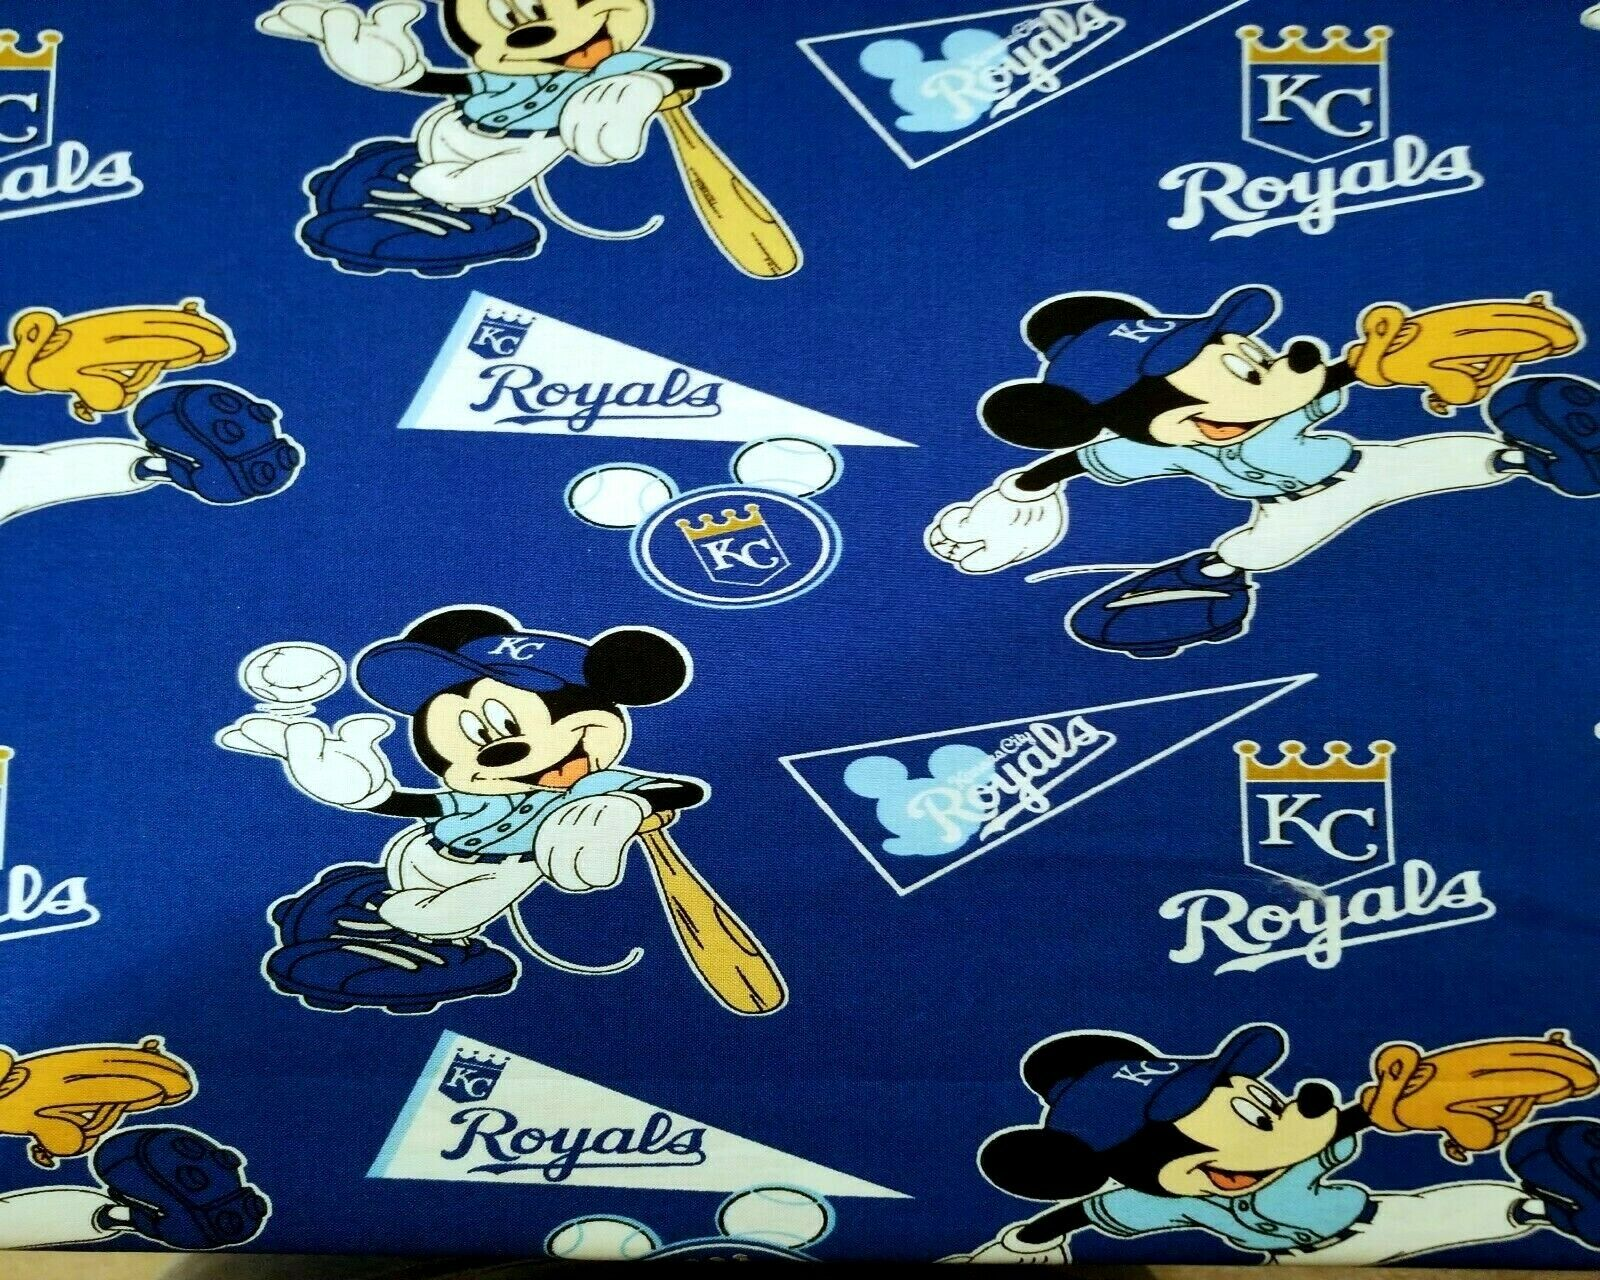 Kansas City Royals & Mickey Mouse Baseball MLB Cotton Fabric